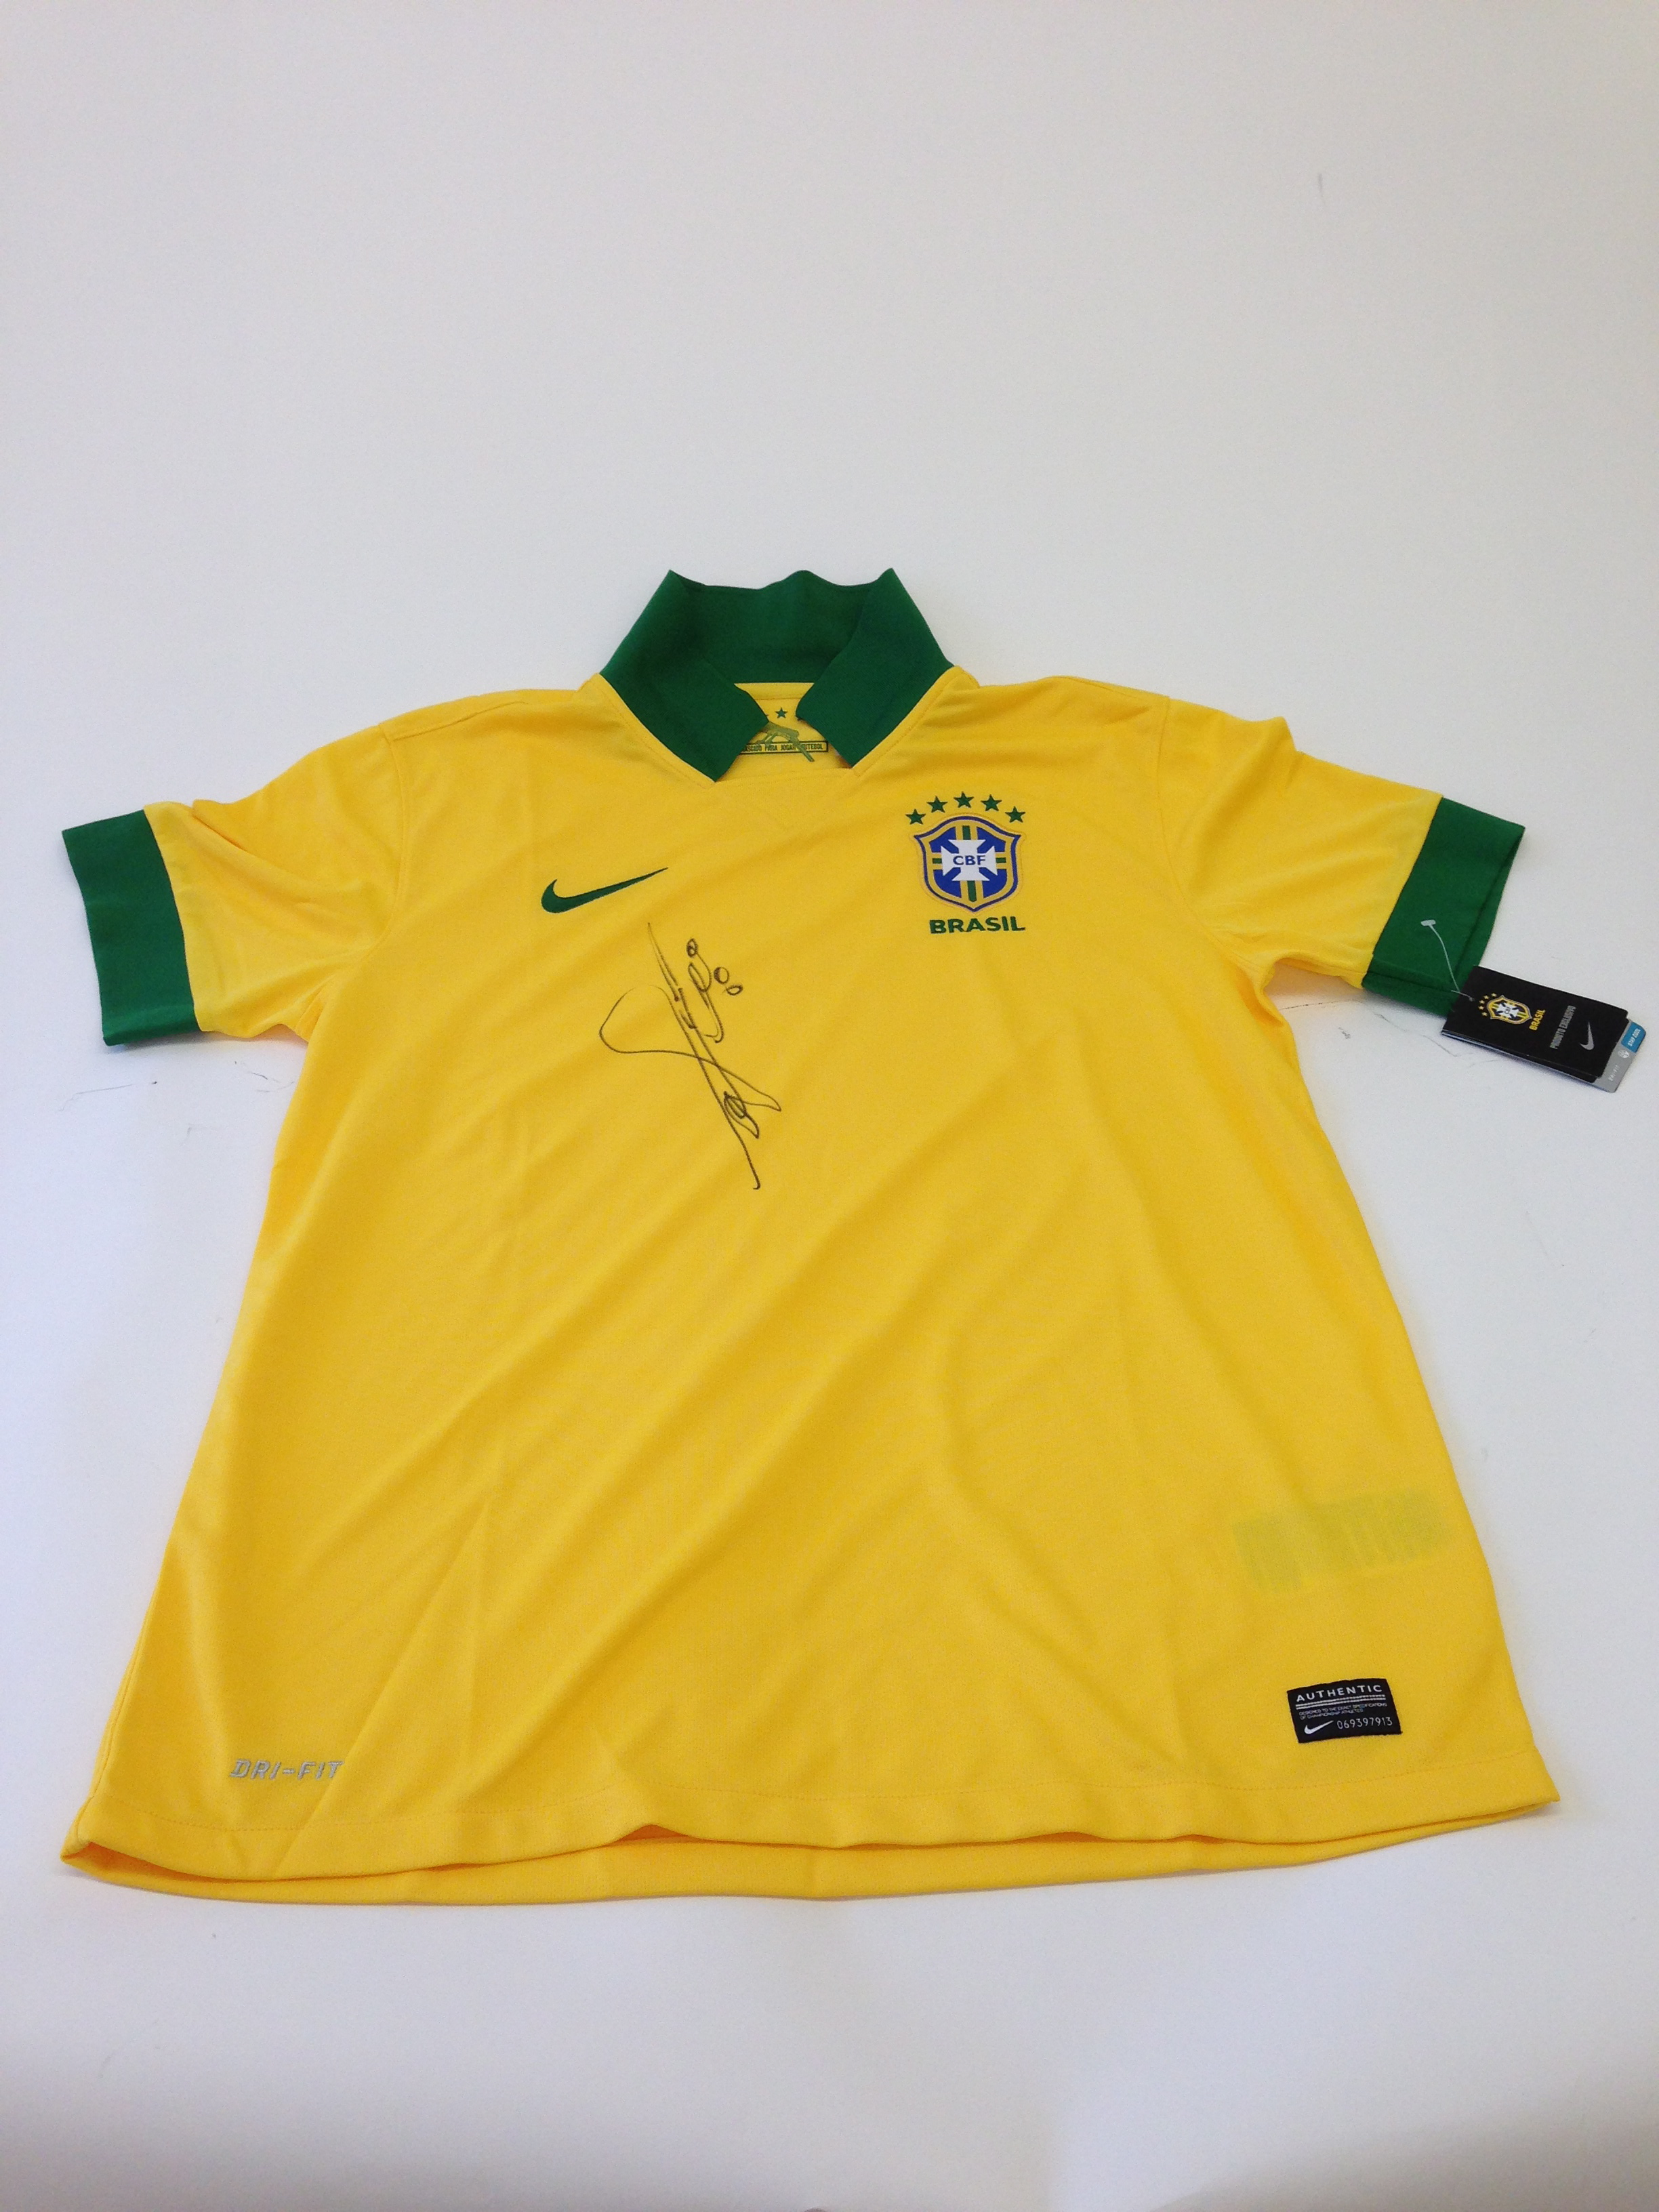 save off 7e9a5 90f74 Collect This Brazil National Football Team Jersey ... - Charitybuzz